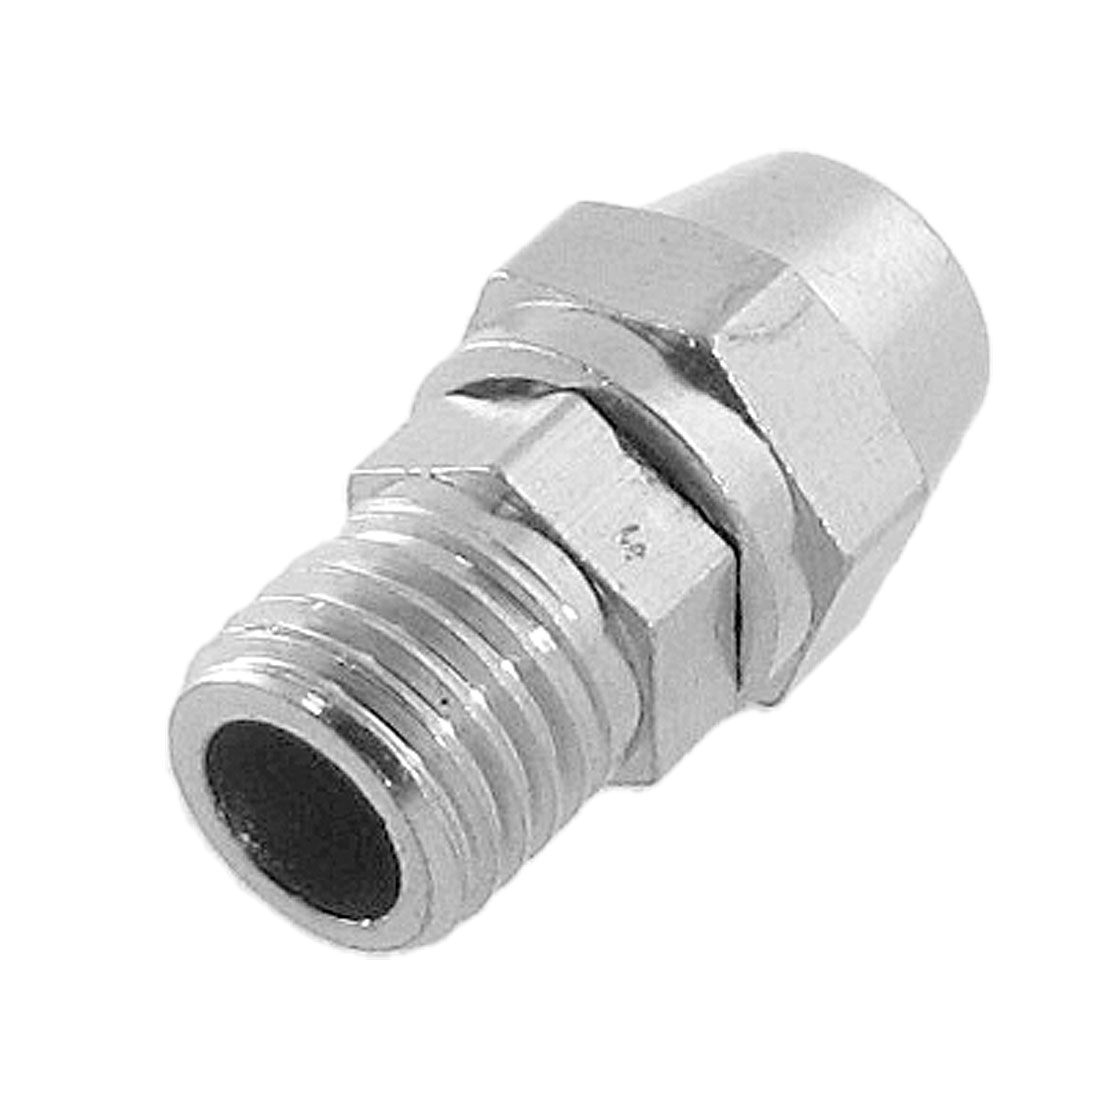 Unique Bargains M8 Thread 4mm x 6mm Air Hose Tube Pneumatic Fitting Quick Disconnect Coupler  sc 1 st  Walmart : 4mm air hose - www.happyfamilyinstitute.com